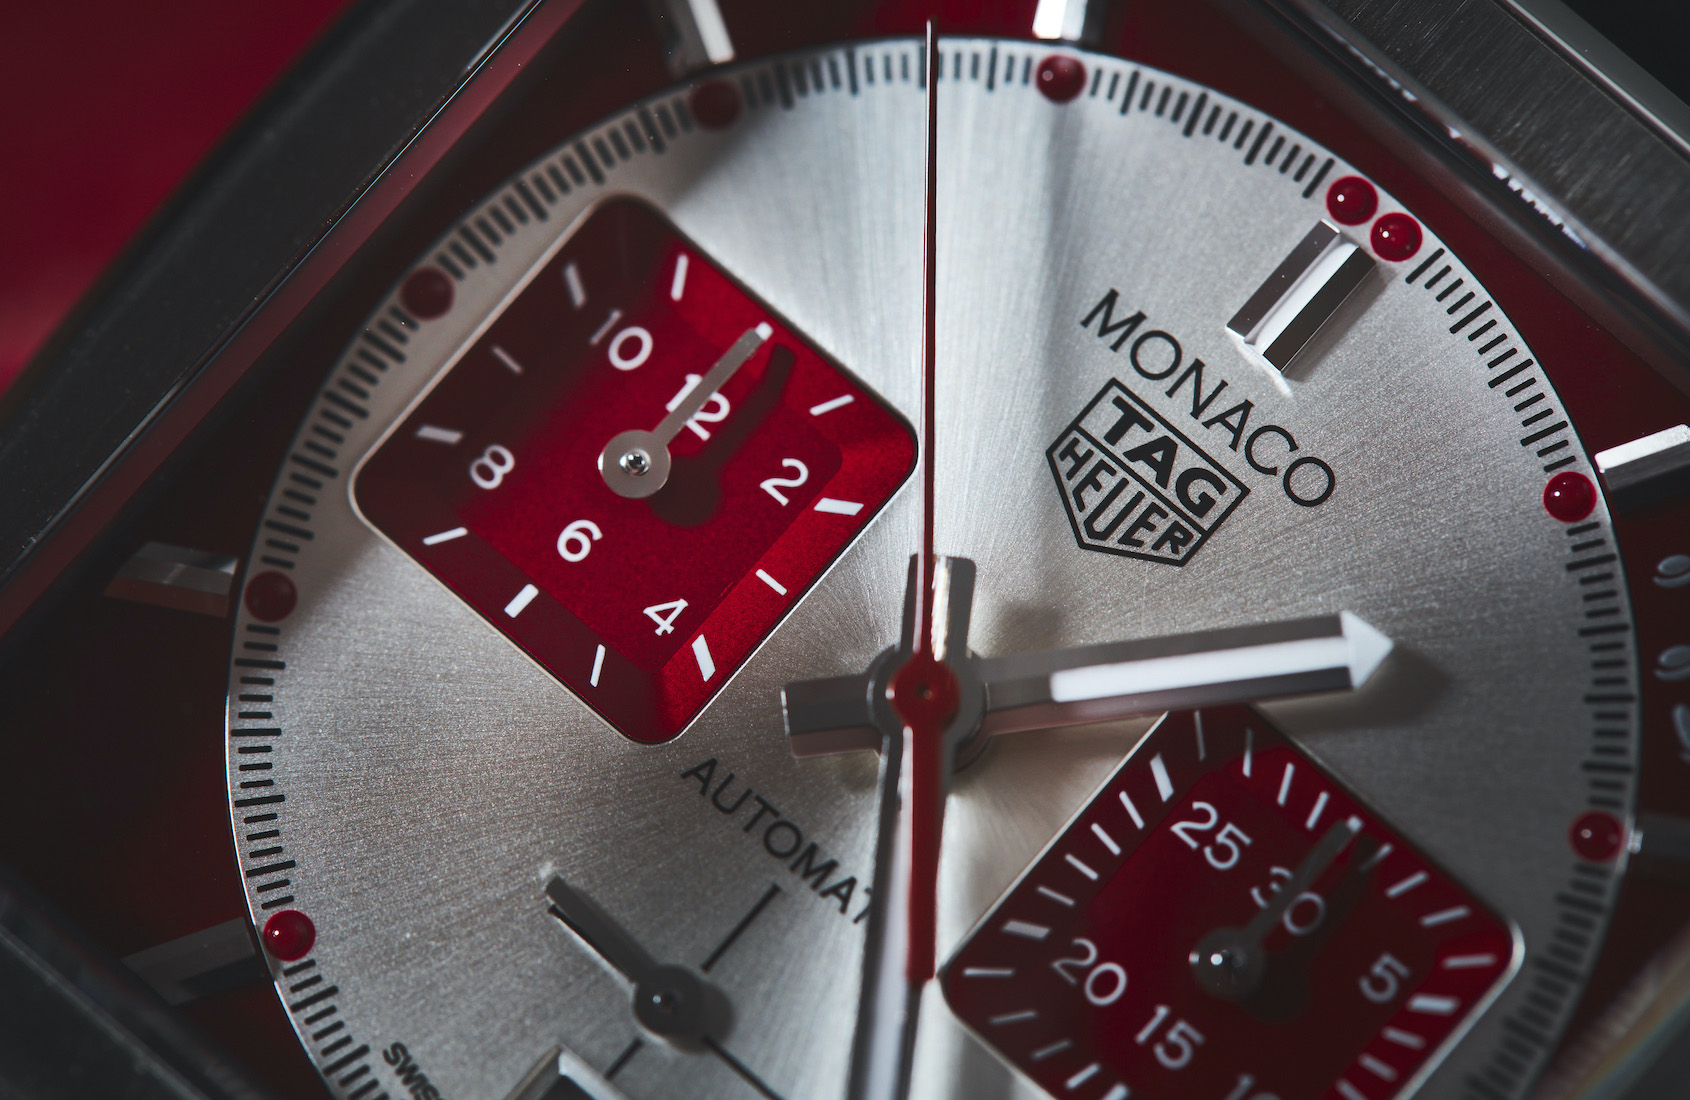 Competition is tough in this battle to pick the top five TAG Heuer watches of 2020